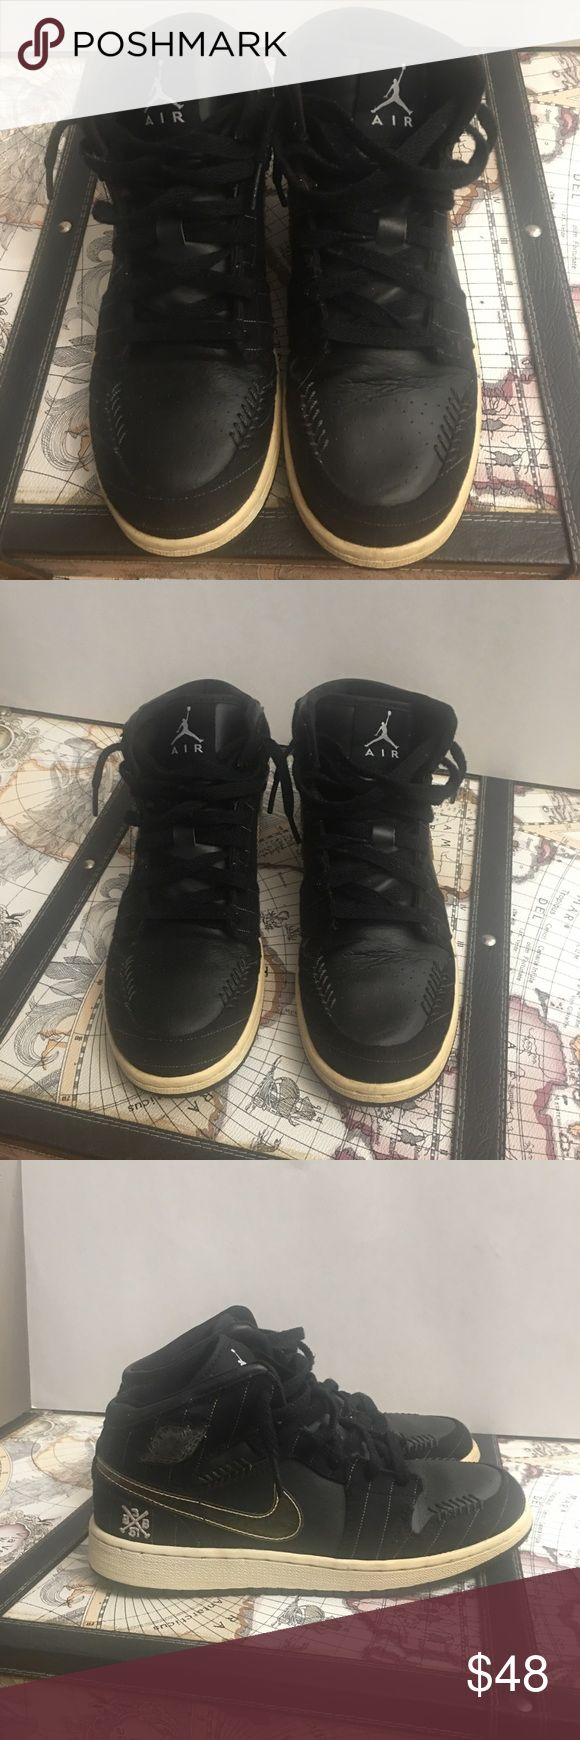 Air Jordan 1 Black ⚾️ 🔥🔥Size 6.5 Air Jordan 1 Black ⚾️ 🔥🔥Size 6.5....No 📦 box. The many pics included display all imperfections...They turned yellow but are in solid condition.. Never see to many pairs of them I have two... There is also a lil scuff on the right sneaker on the air Jordan symbol on the side.. Cool sneakers there called baseball ⚾️ Jordan's!!!! Probably could use laces Air Jordan Shoes Sneakers